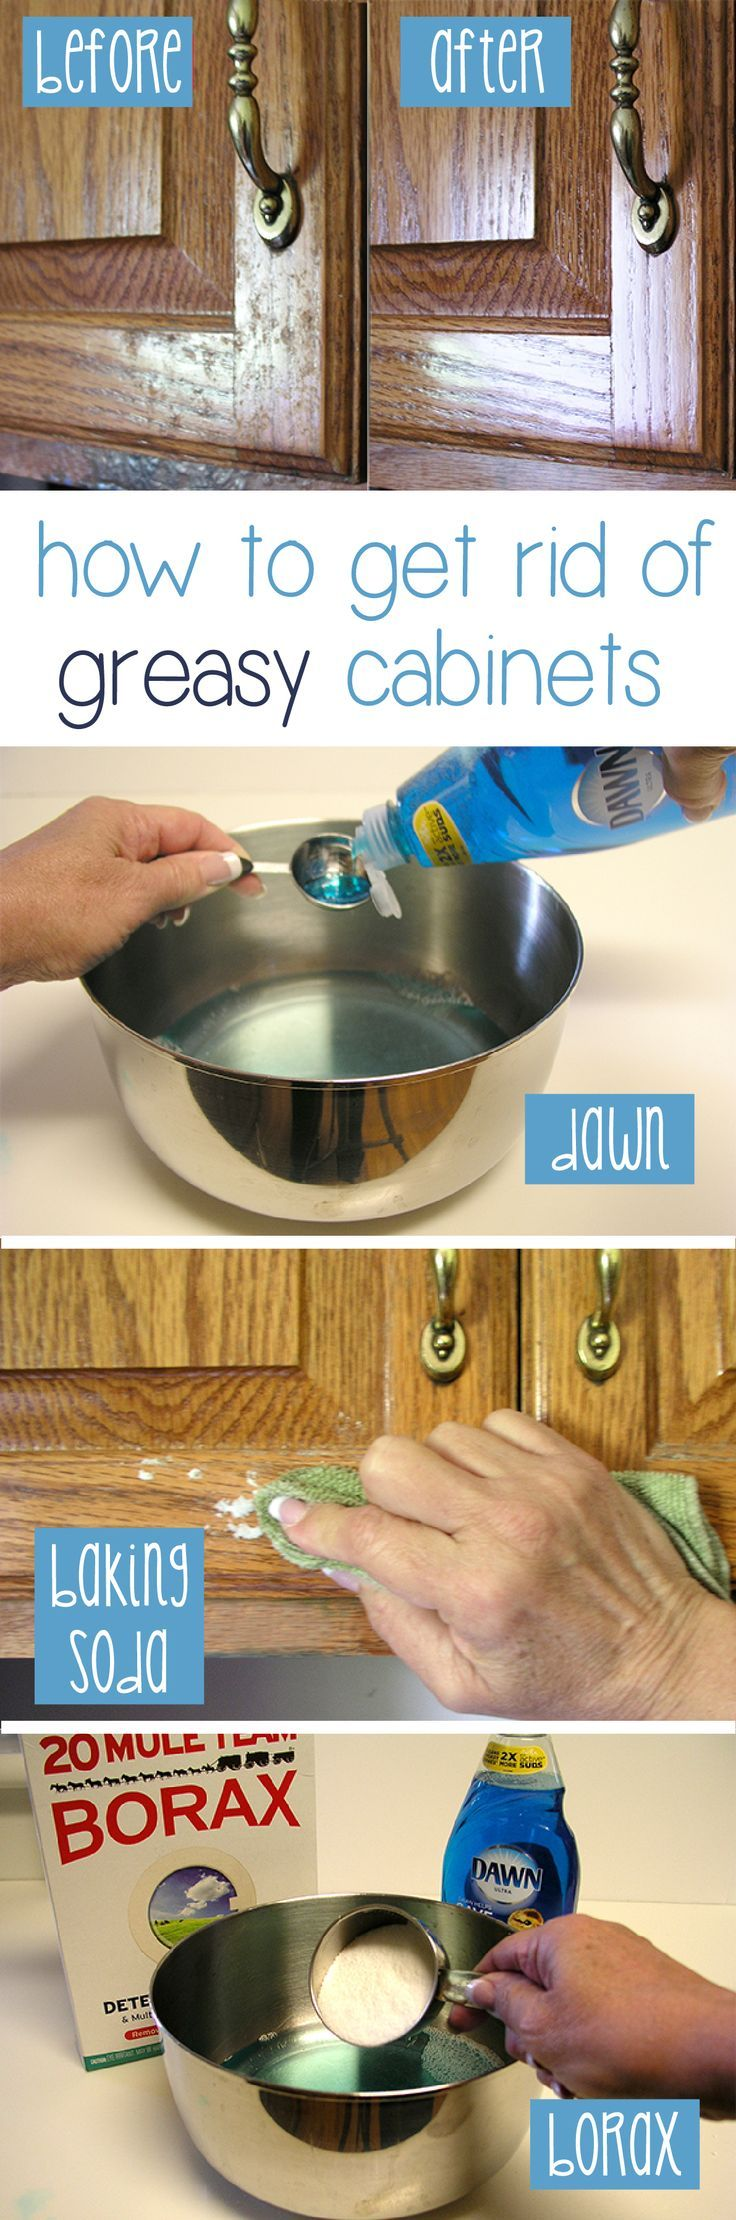 cleaning grease from kitchen cabinets how to clean grease from kitchen cabinet doors 8218